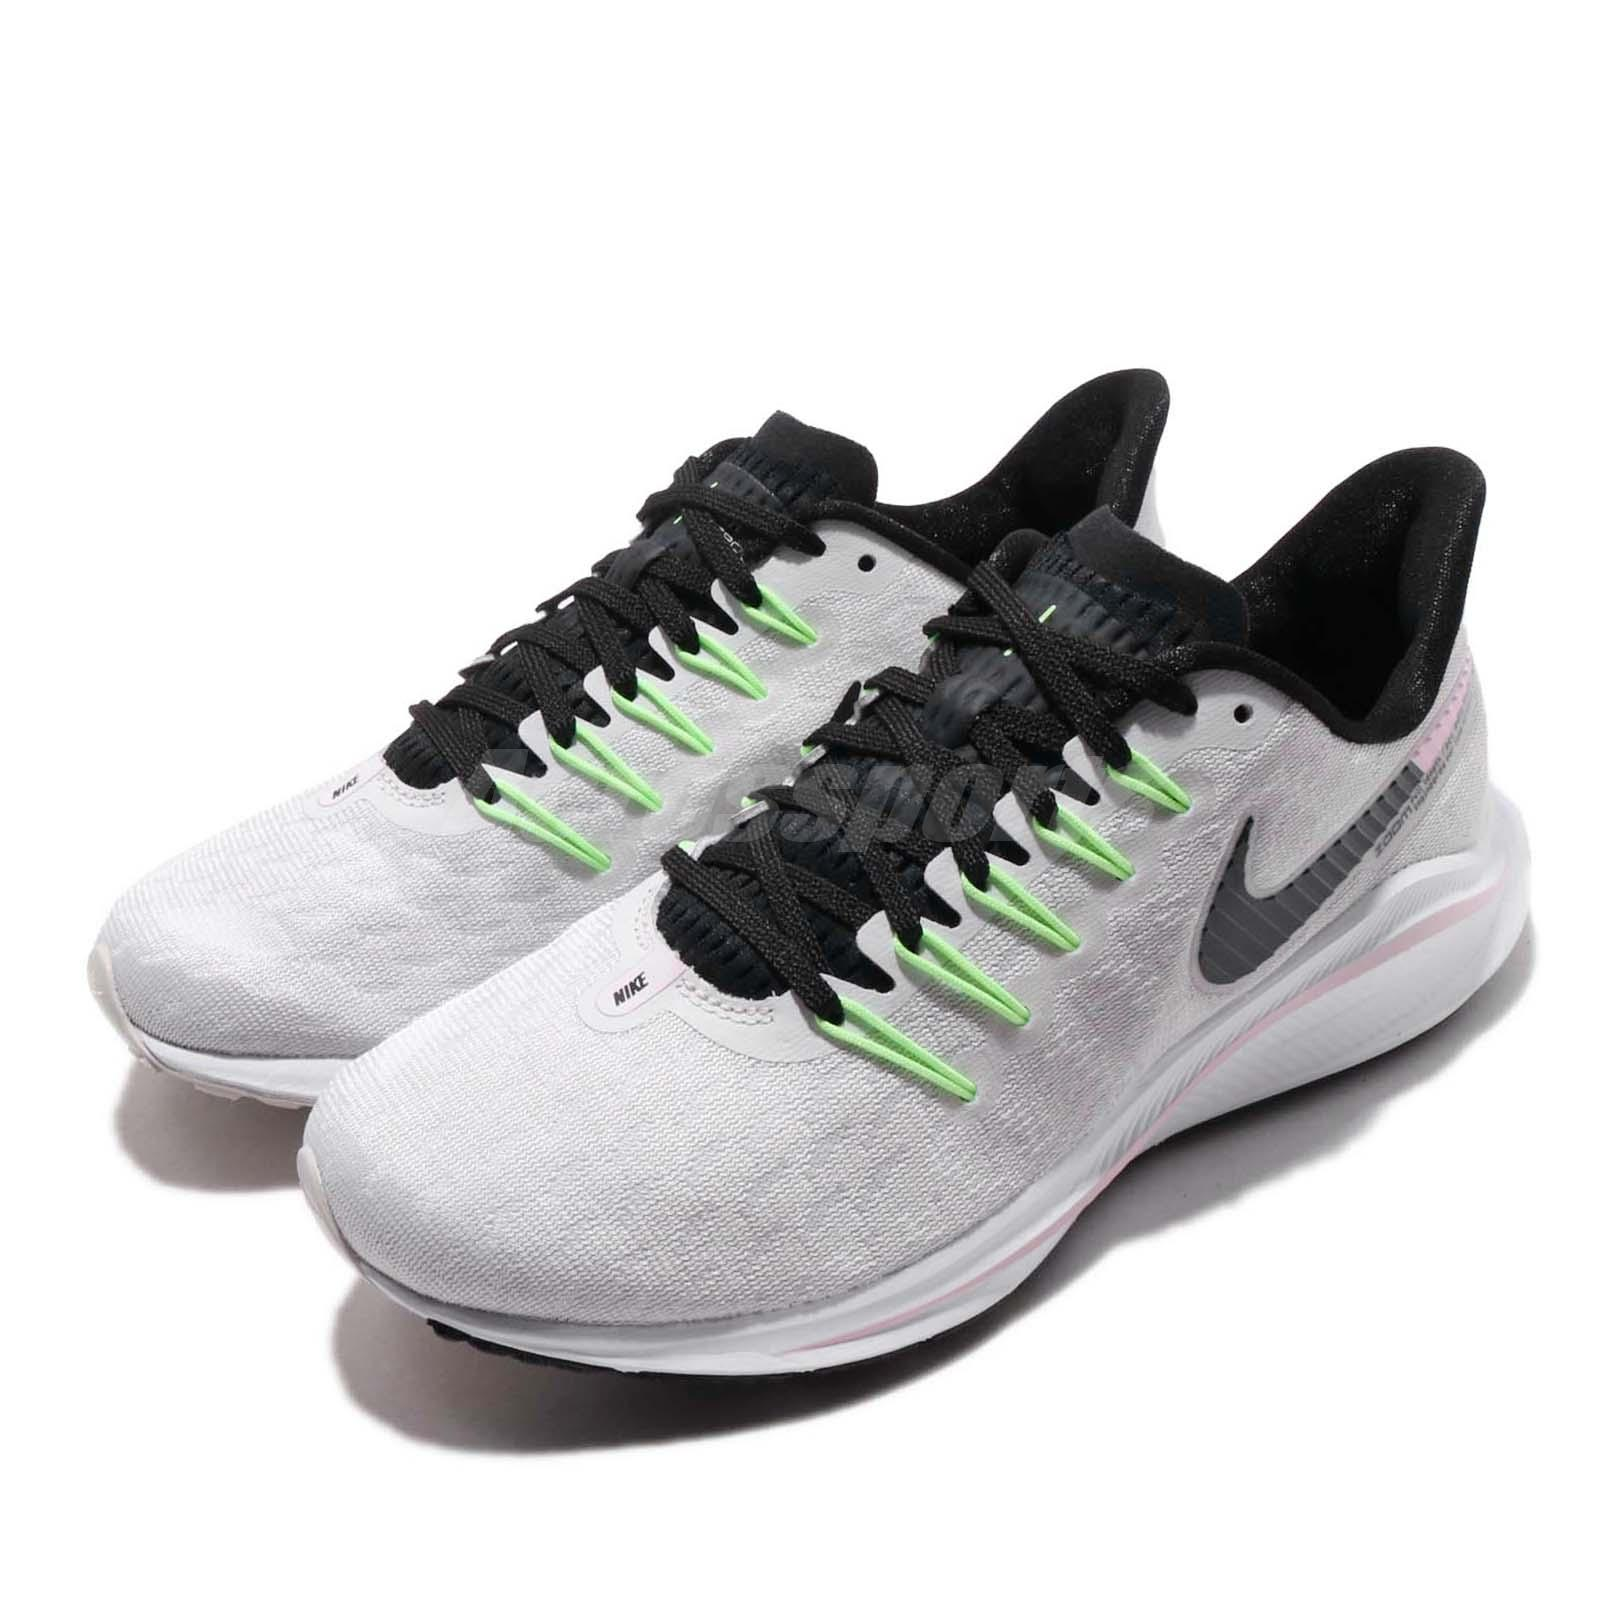 9fb1802ed5b Details about Nike Wmns Air Zoom Vomero 14 Grey Black Pink Women Running  Shoes AH7858-002